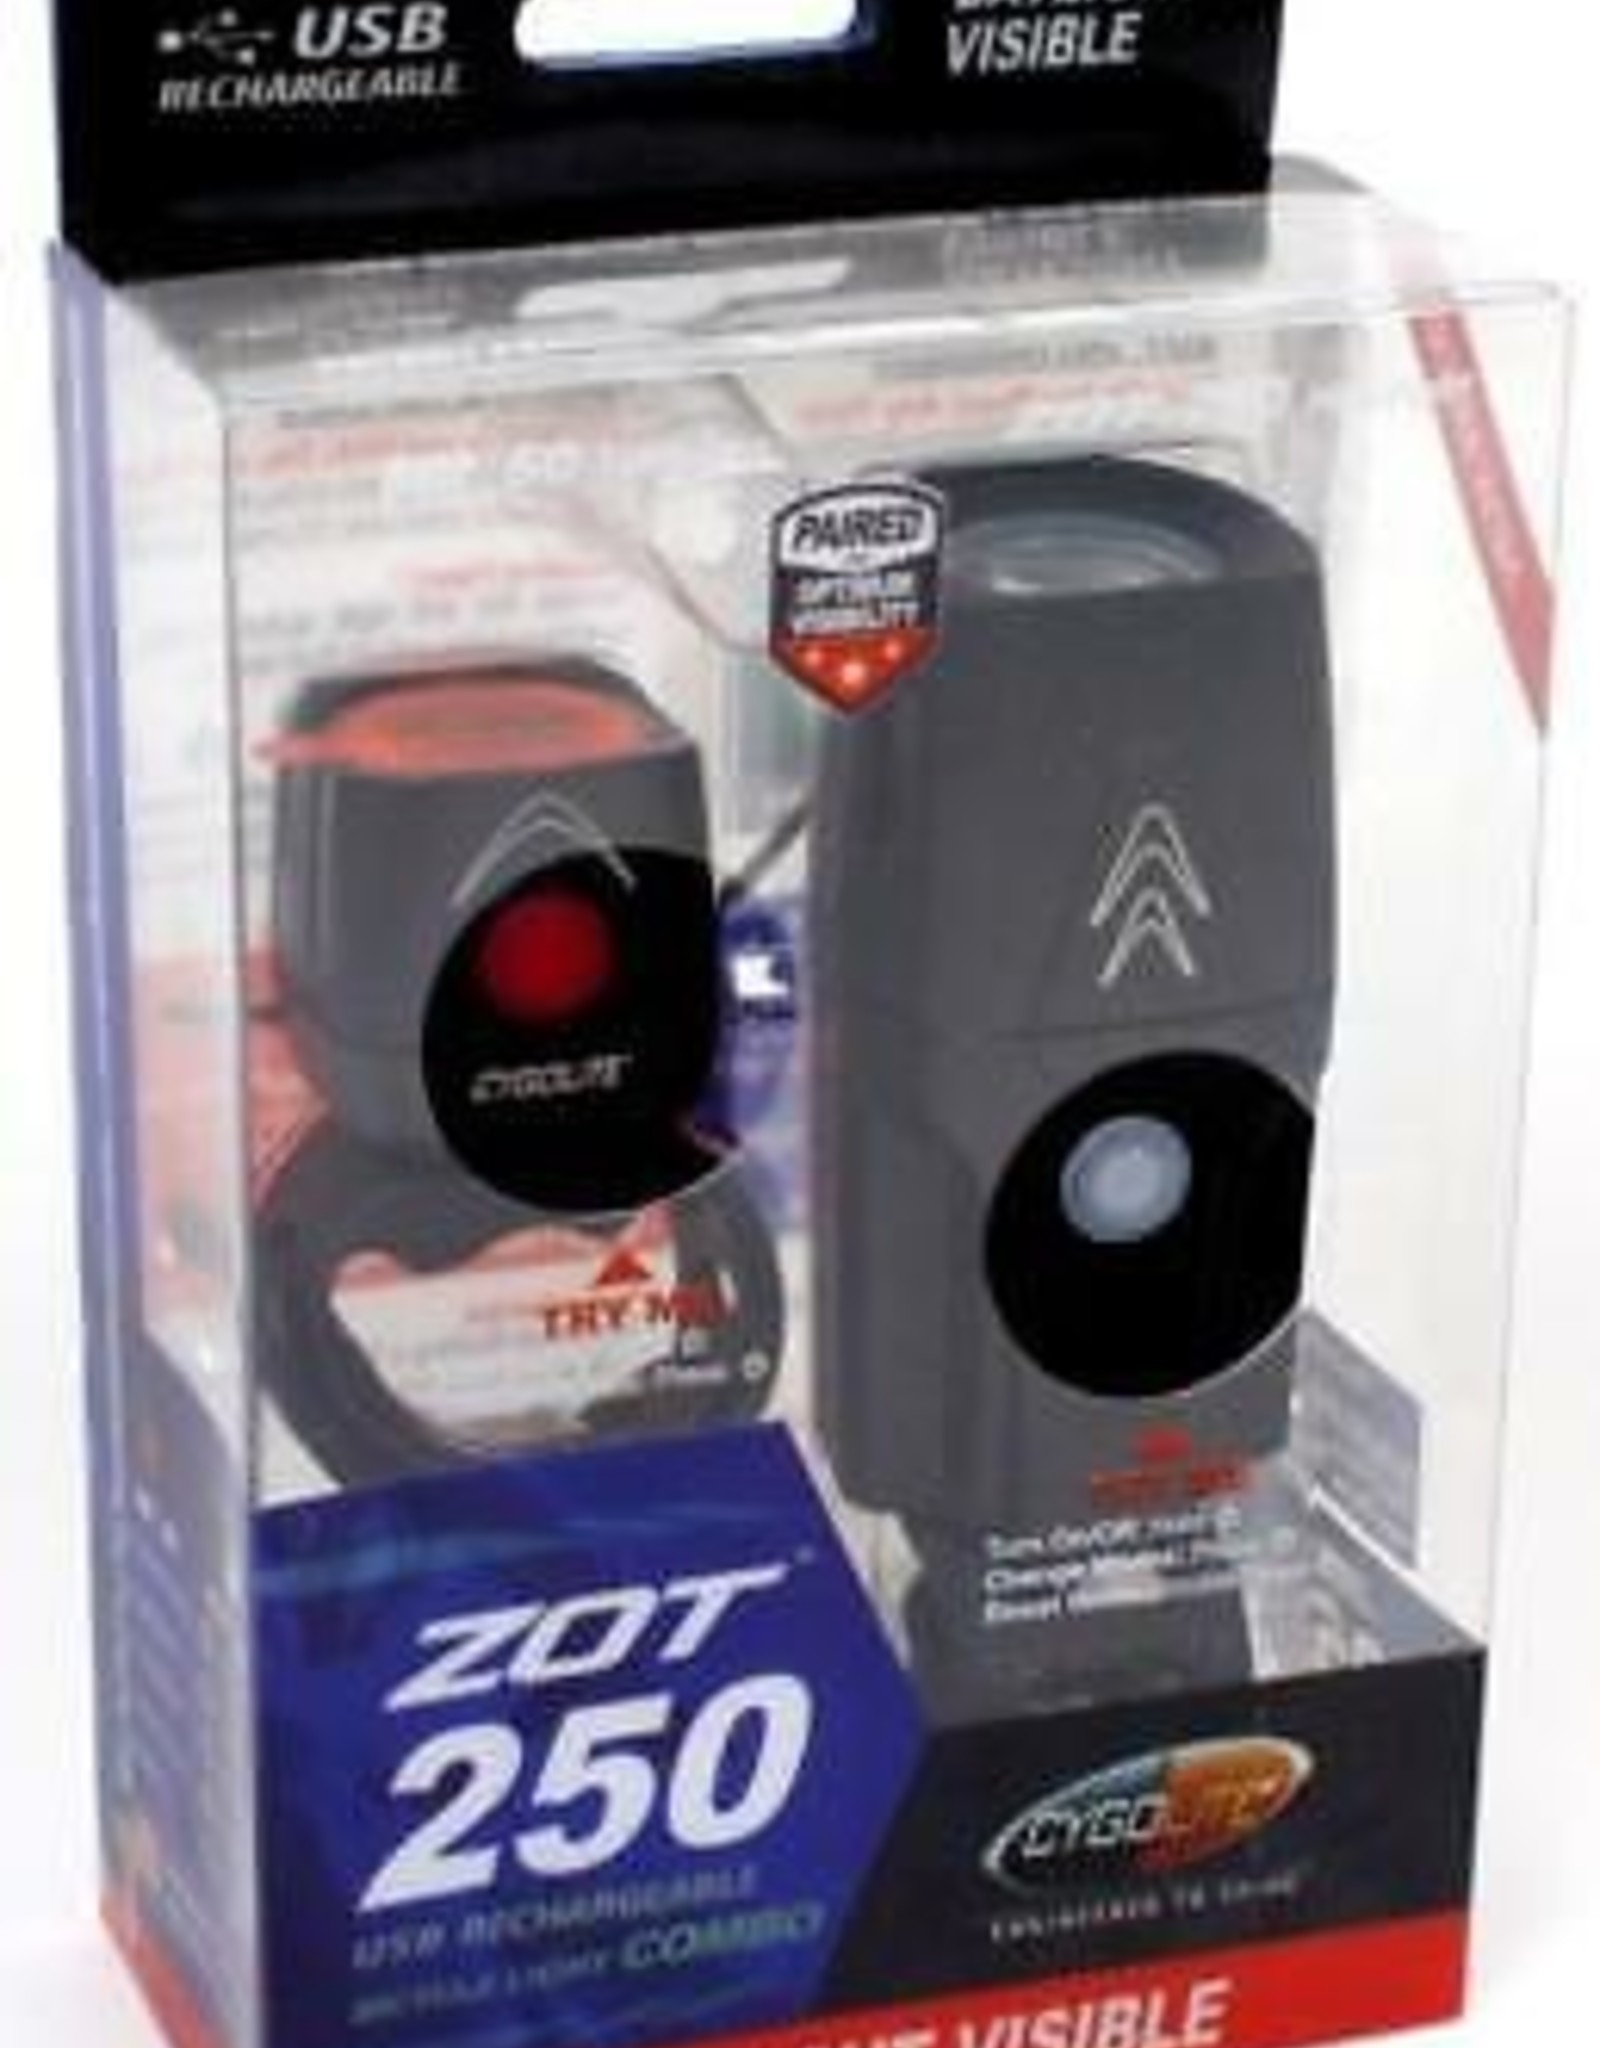 Cygolite Zot 250 Headlight and Dice TL 50 Taillight Rechargeable Light Set